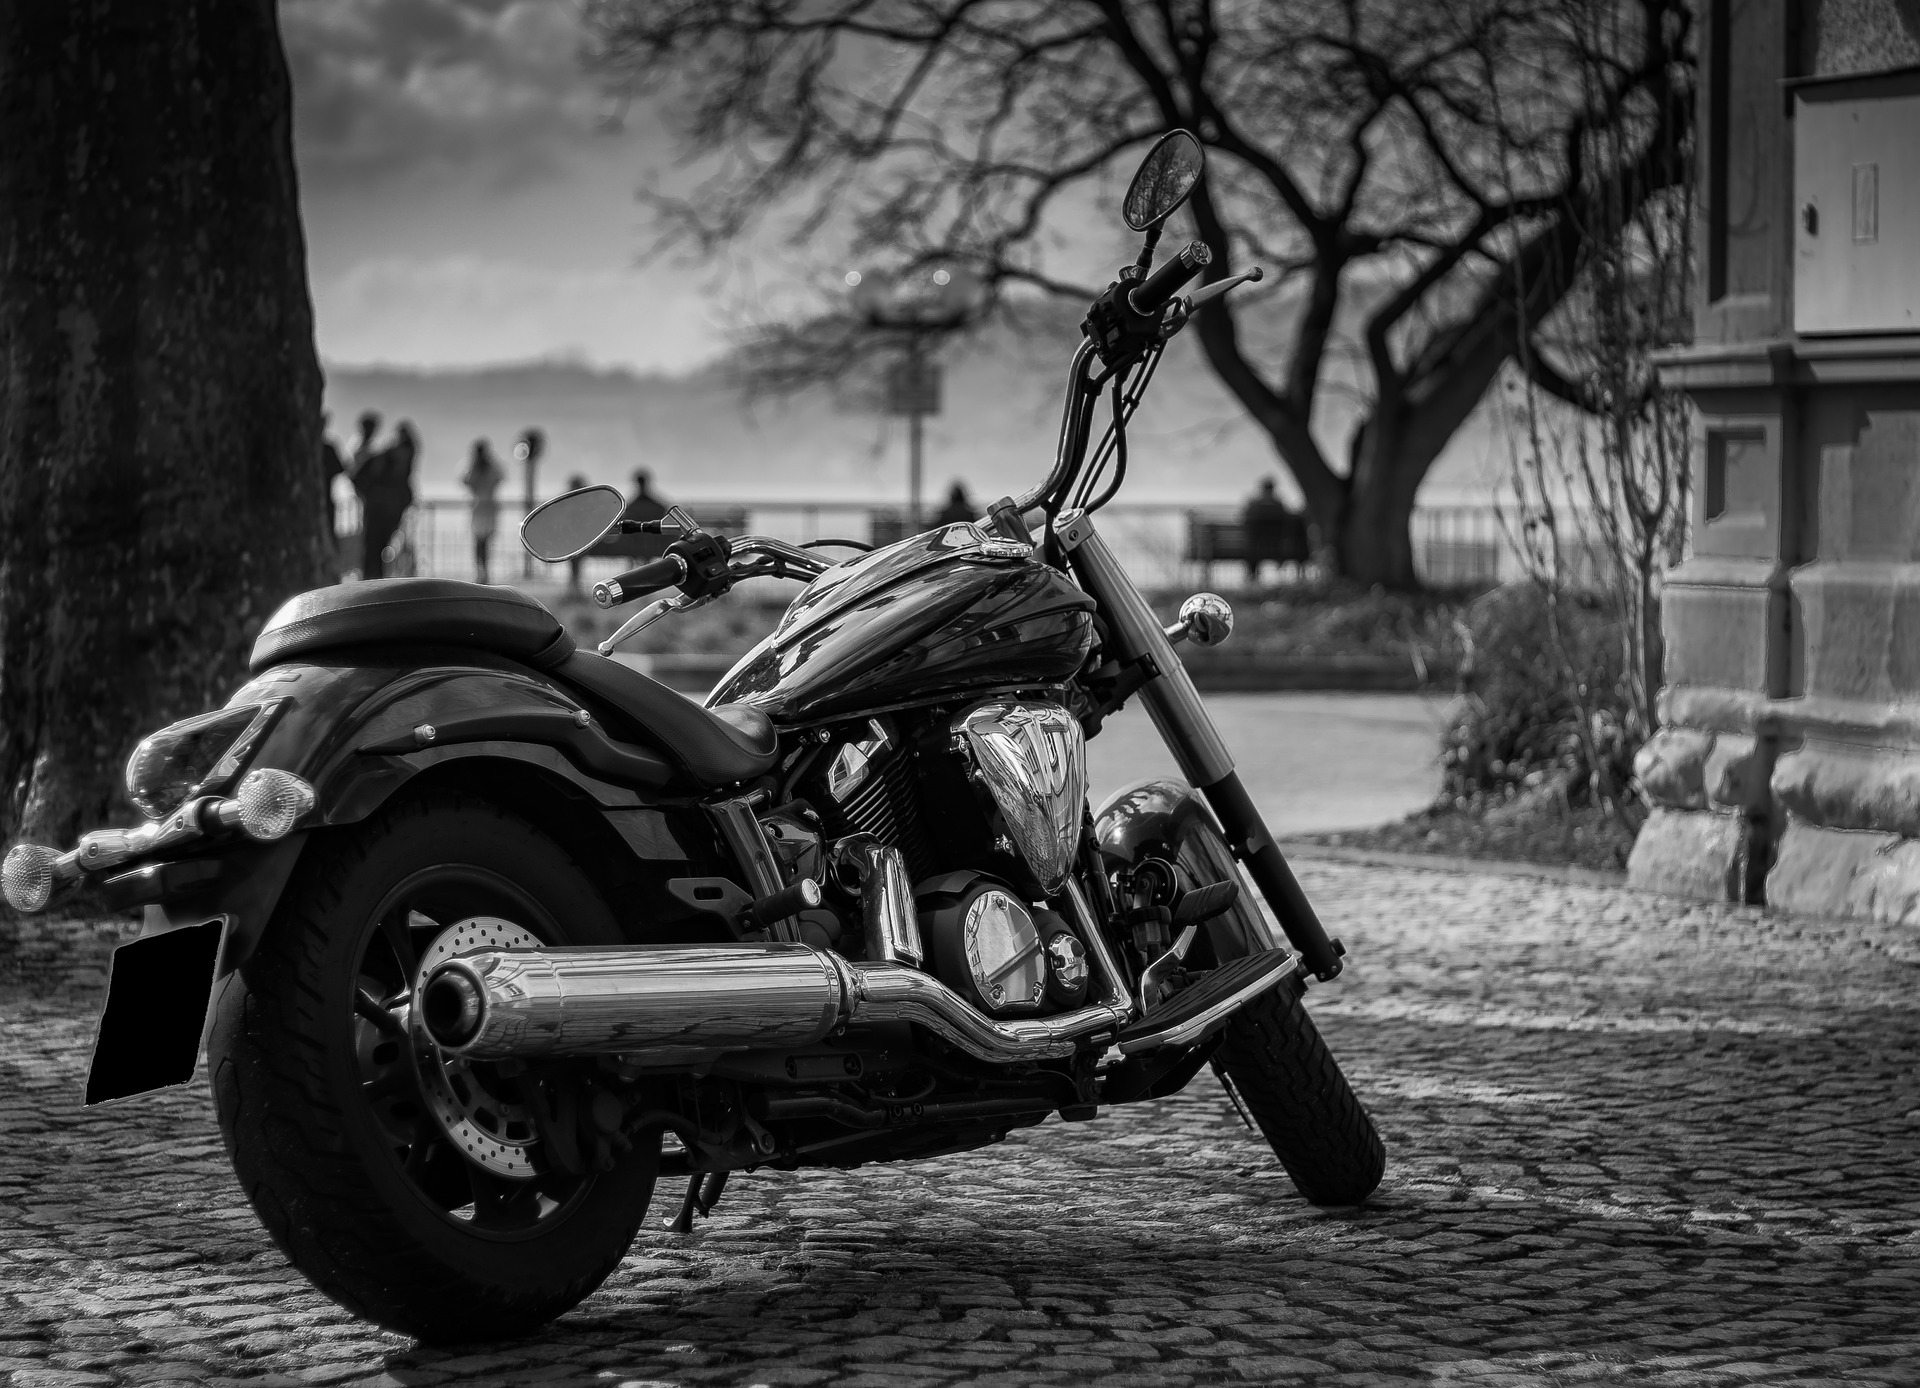 Motorcycle - 6